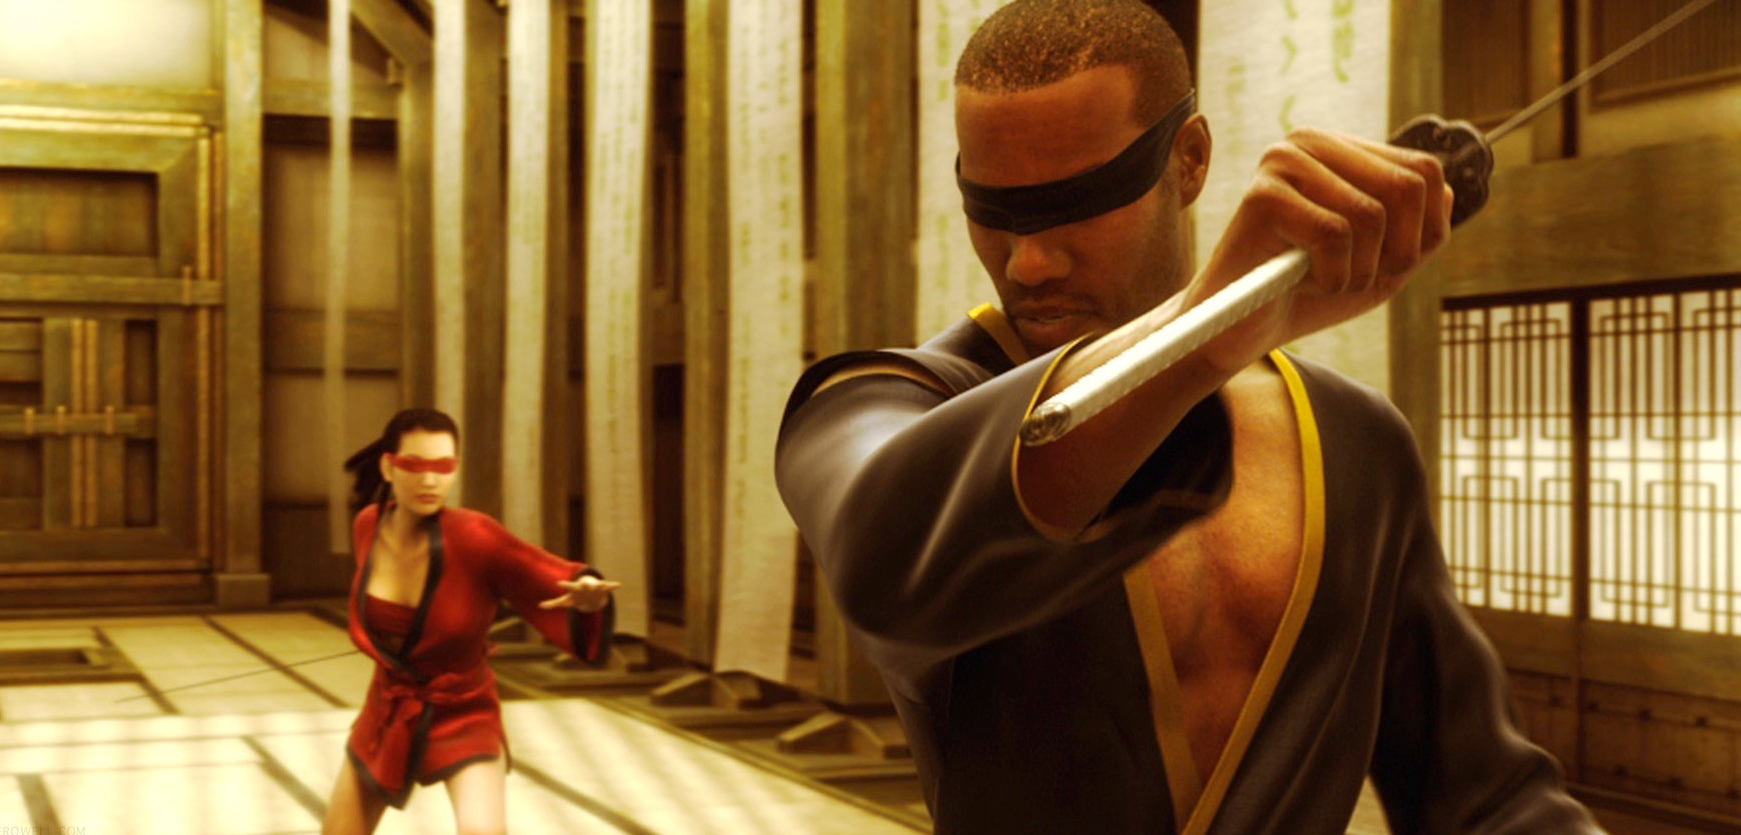 Jue (voiced by Pamela Adlon) and Thaddeus (voiced by Kevin Michael Richardson) in training in Final Flight of the Osiris episode of The Animatrix (2003)